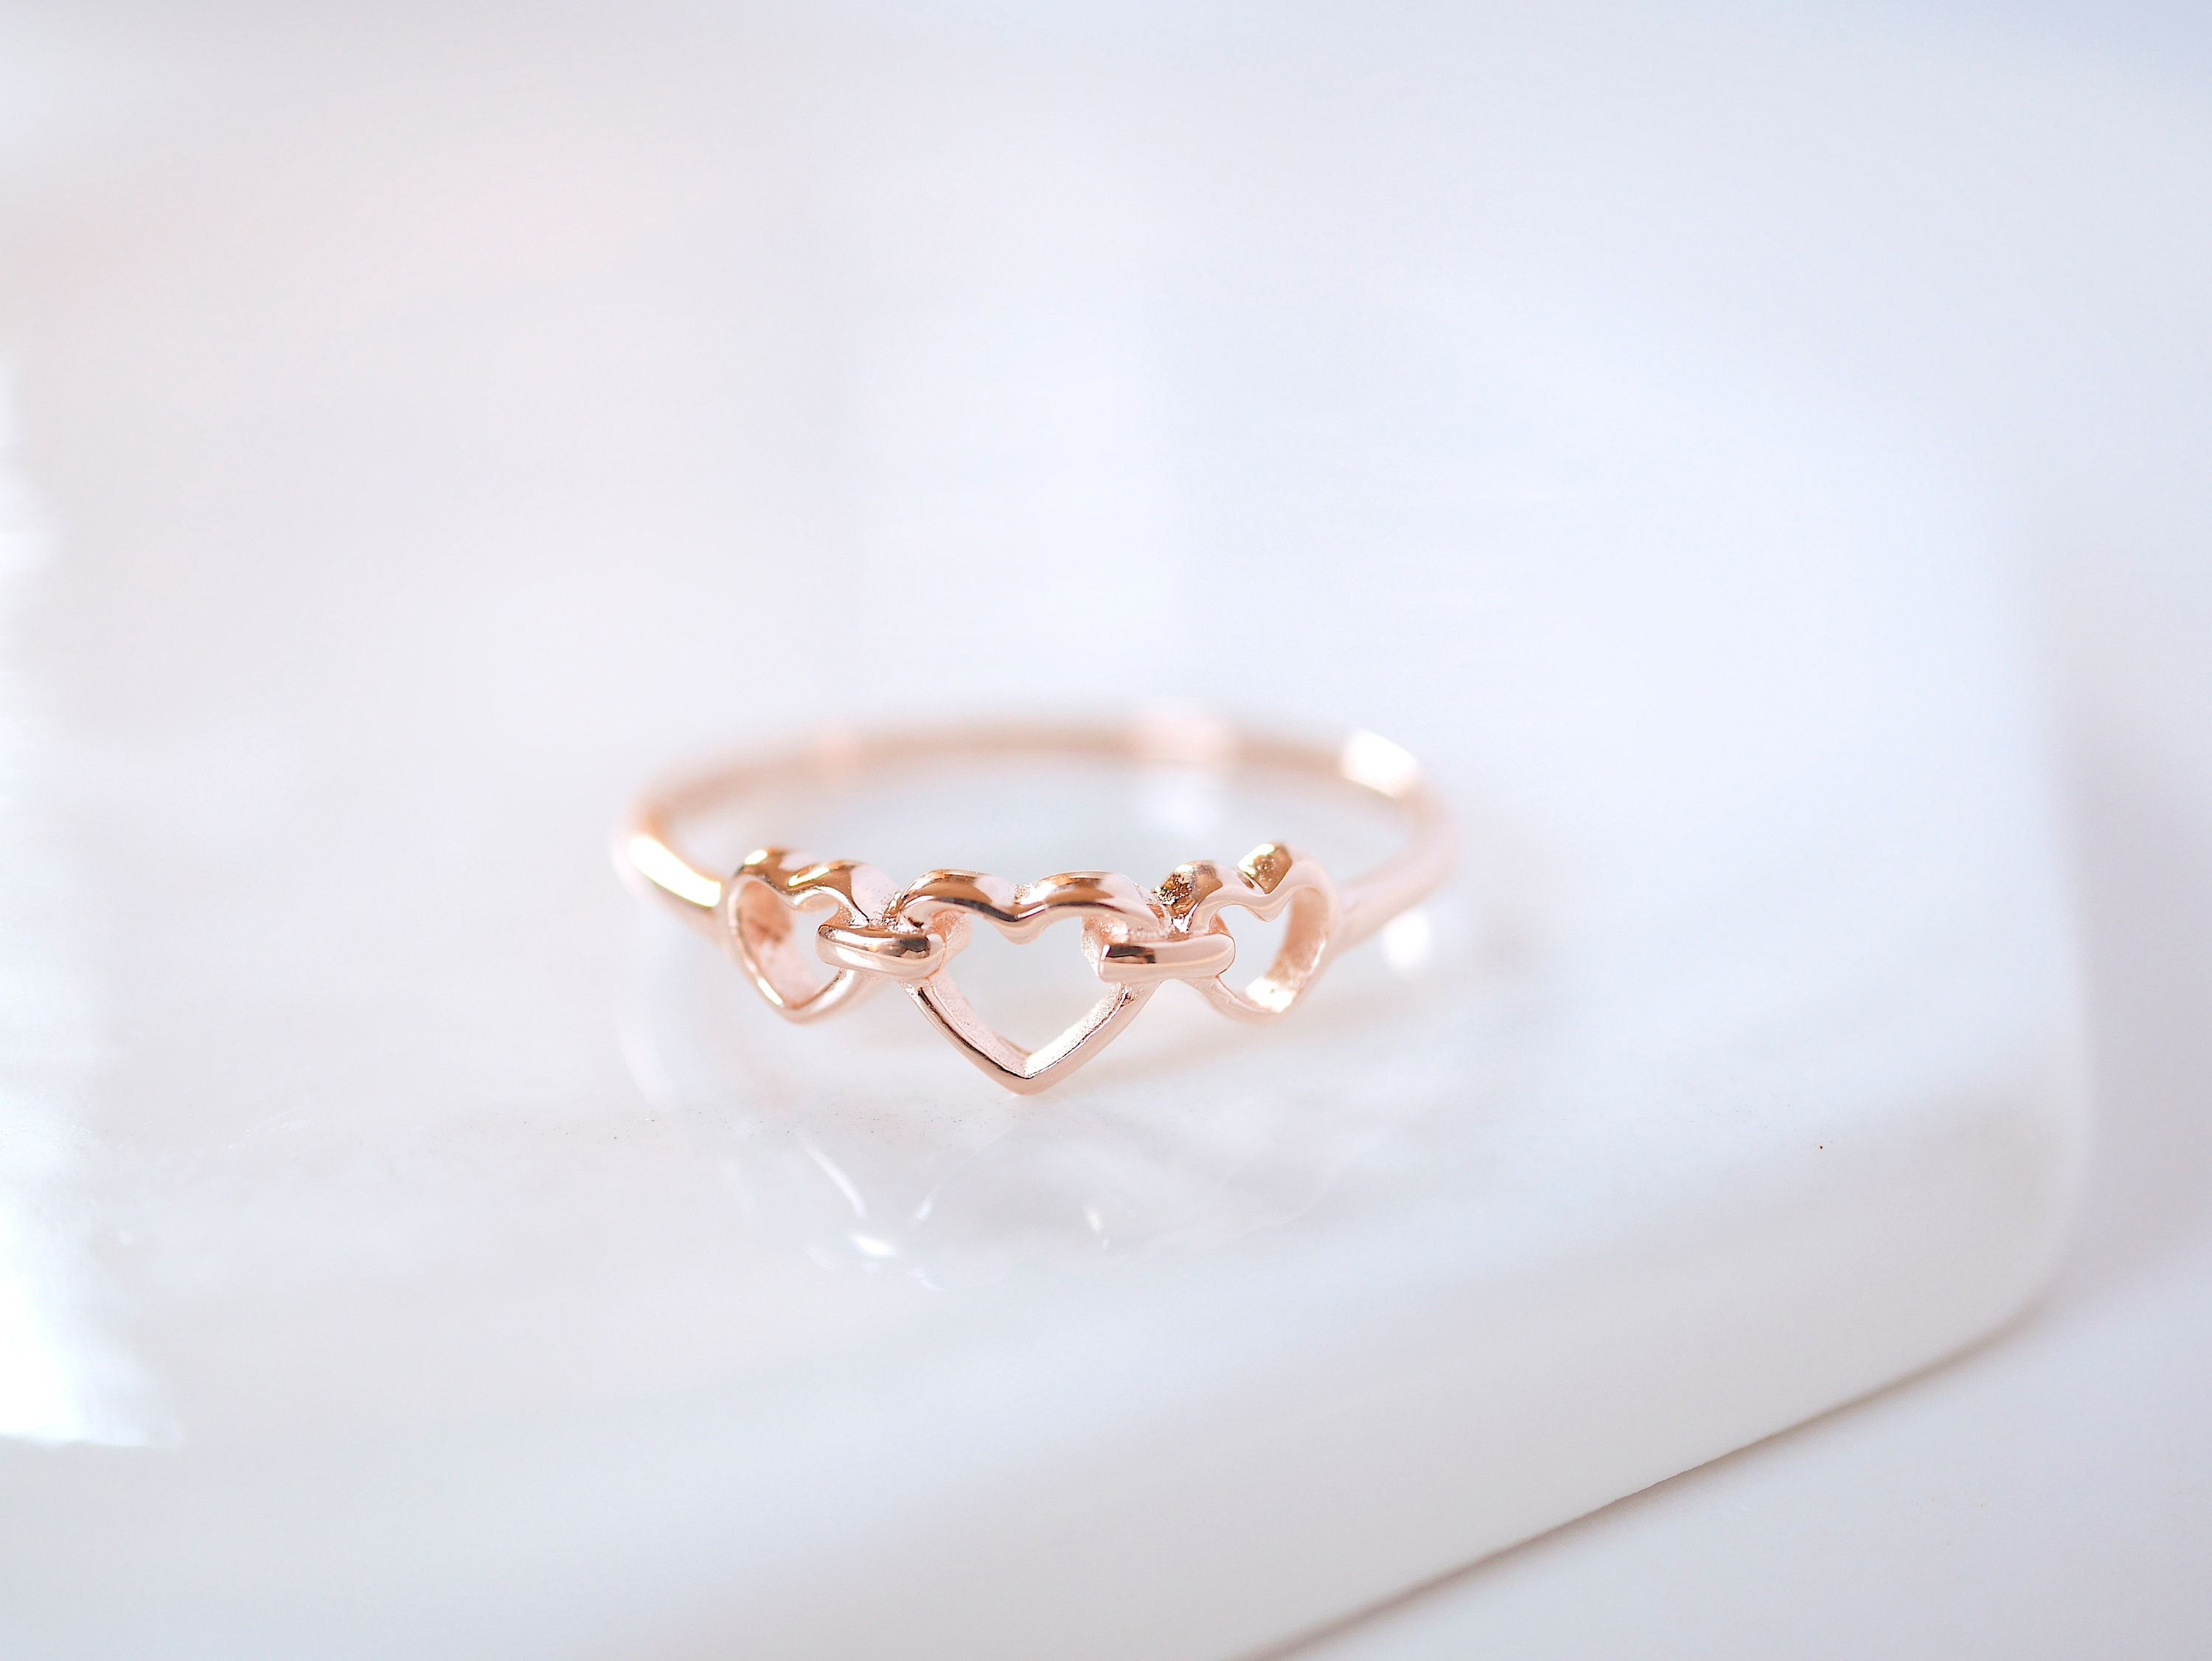 This little dainty ring is crafted in a remarkable heart shape knotted together. It also represents a symbol of undying love. It makes a perfect Valentine's gift and jewelry, but you can enjoy wearing it every day still. This meaningful heart ring is a timeless treasure that offers a comfortable fit without compromising style. This ring: - available in 2 base metal options, sterling silver and solid golds from 10K, 14K, and 18K - sterling silver base comes with 3 finishes: silver, 14k gold plate